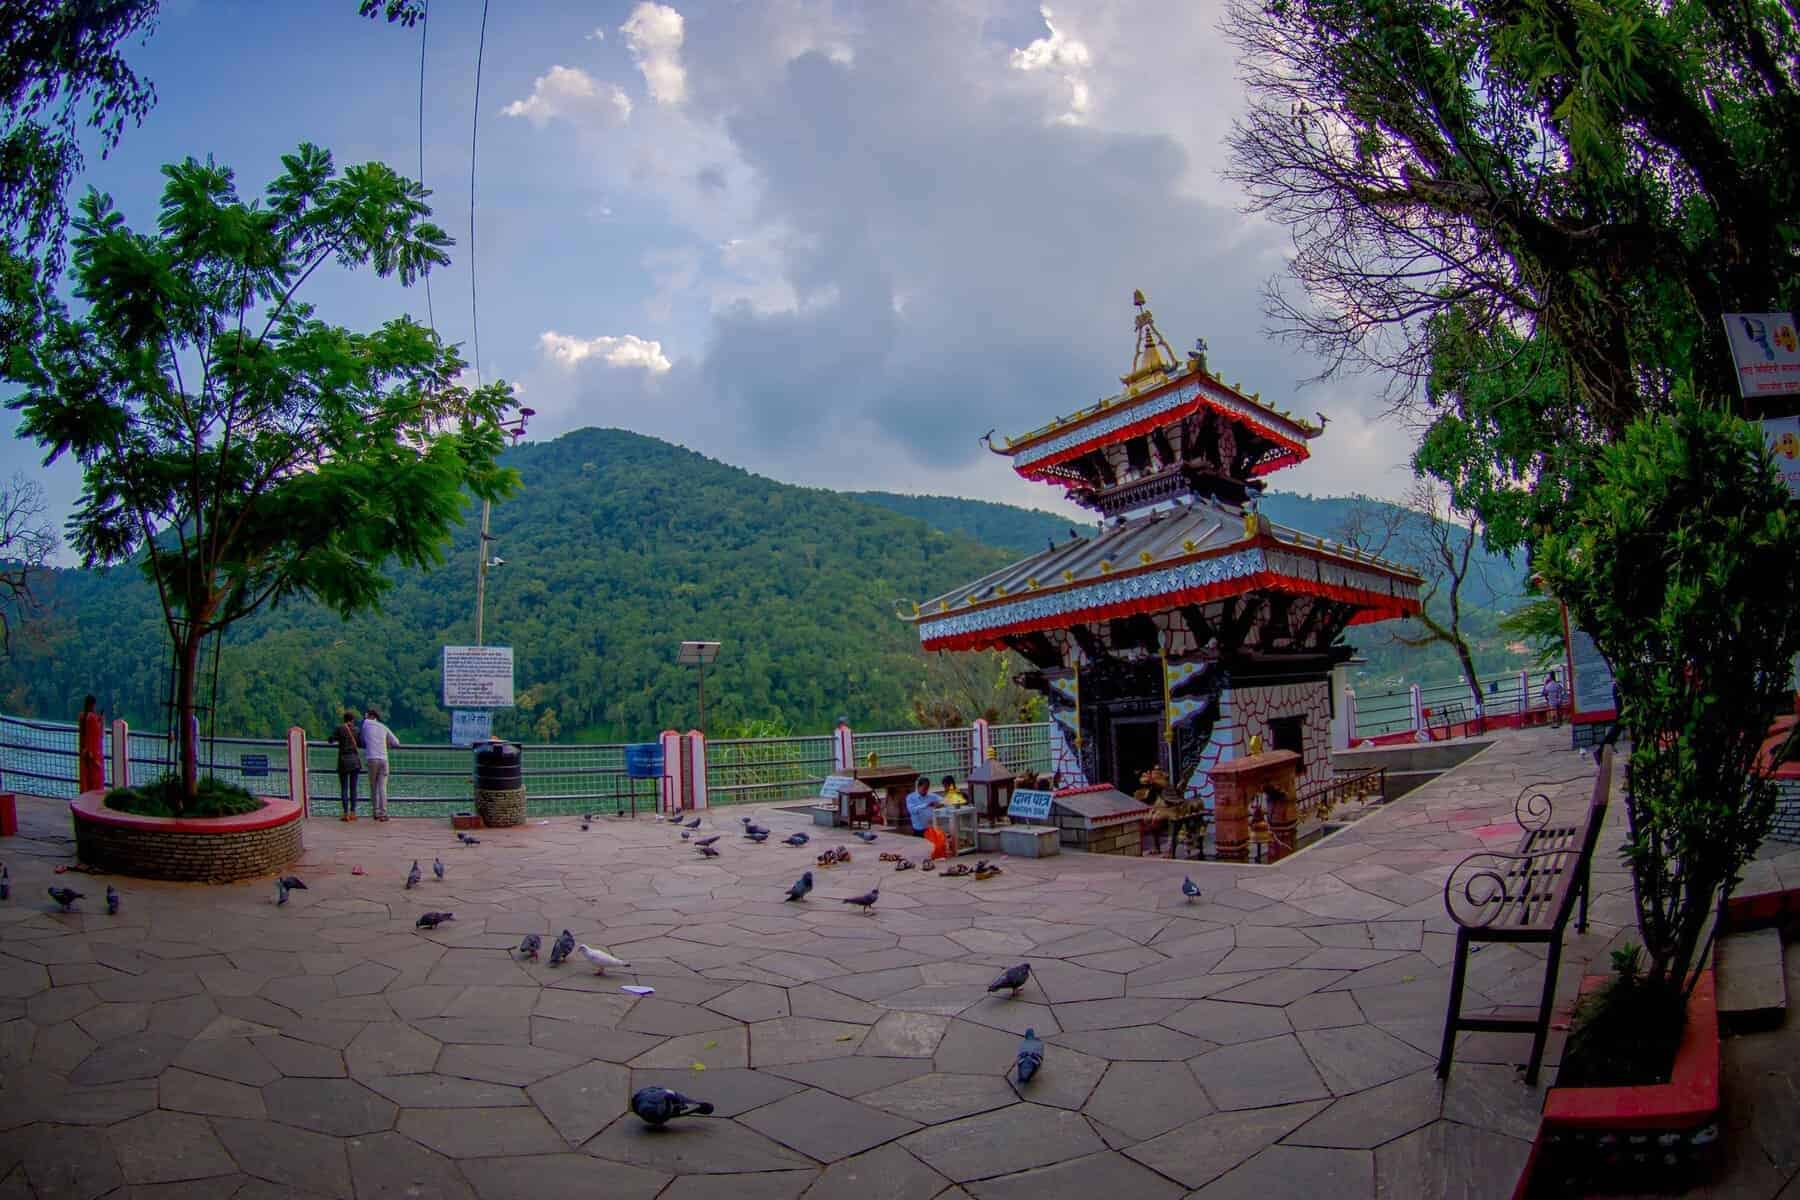 POKHARA, NEPAL -People walking around of Tal Barahi Temple, located at the center of Phewa Lake, is the most important religious monument of Pokhara.